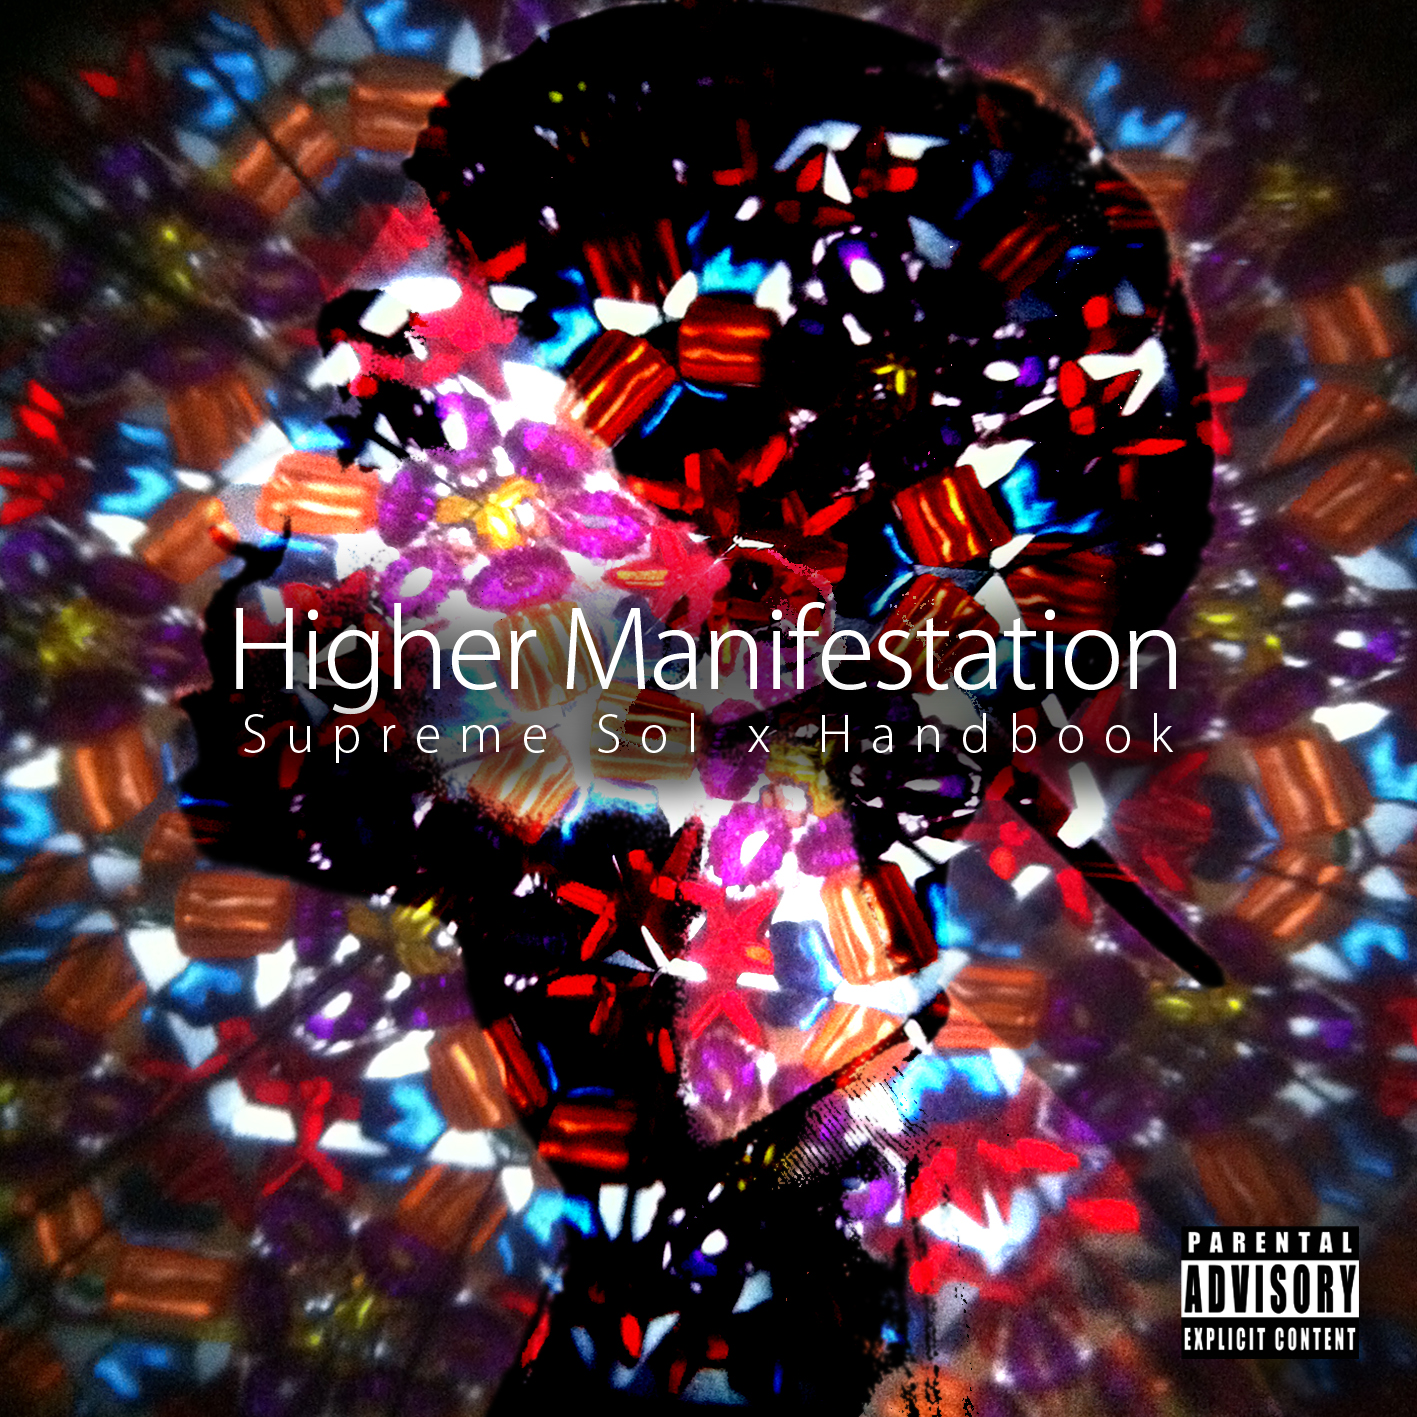 Free Download: Supreme Sol & Handbook – Higher Manifestation (2012)